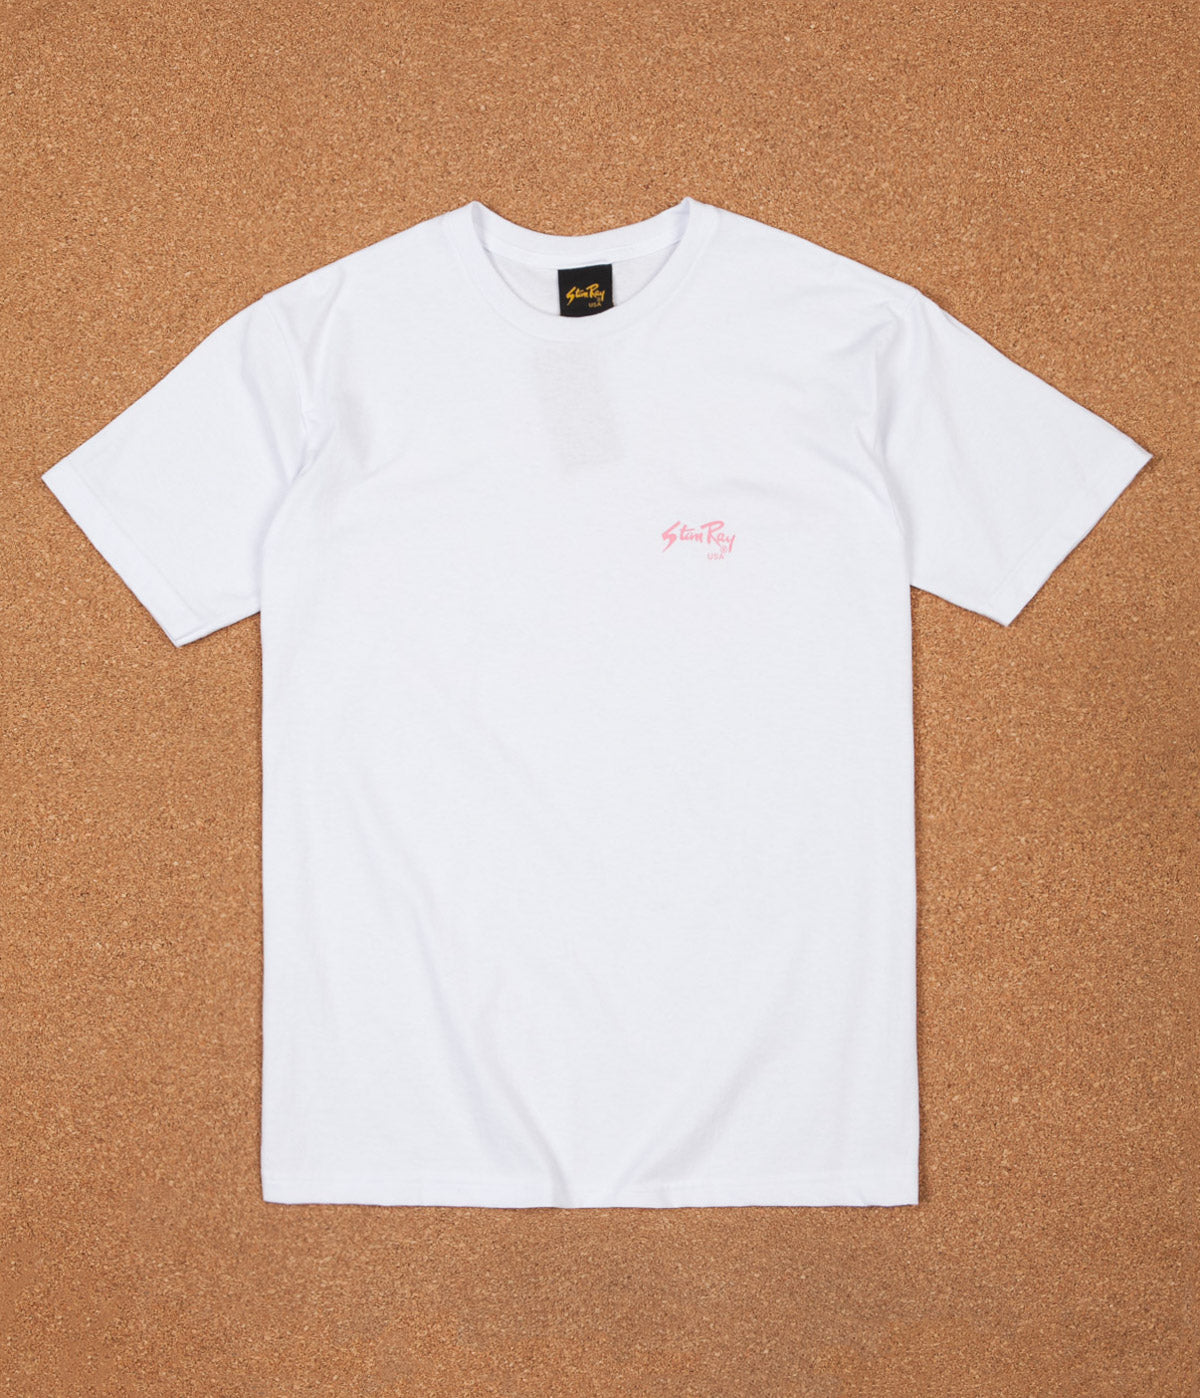 Stan Ray Painter T-Shirt - White / Pink